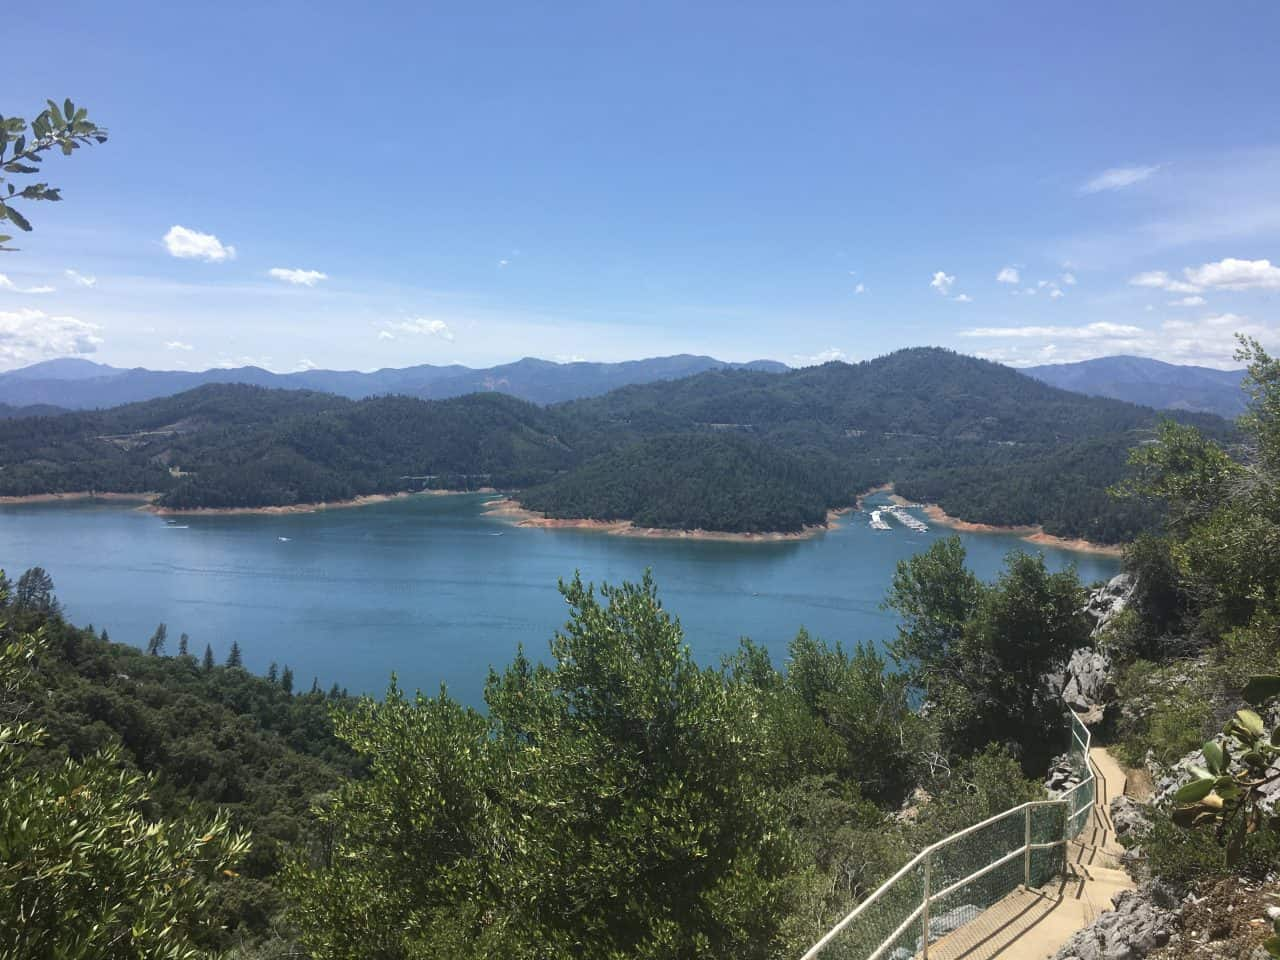 view of lake shasta after exiting the caverns